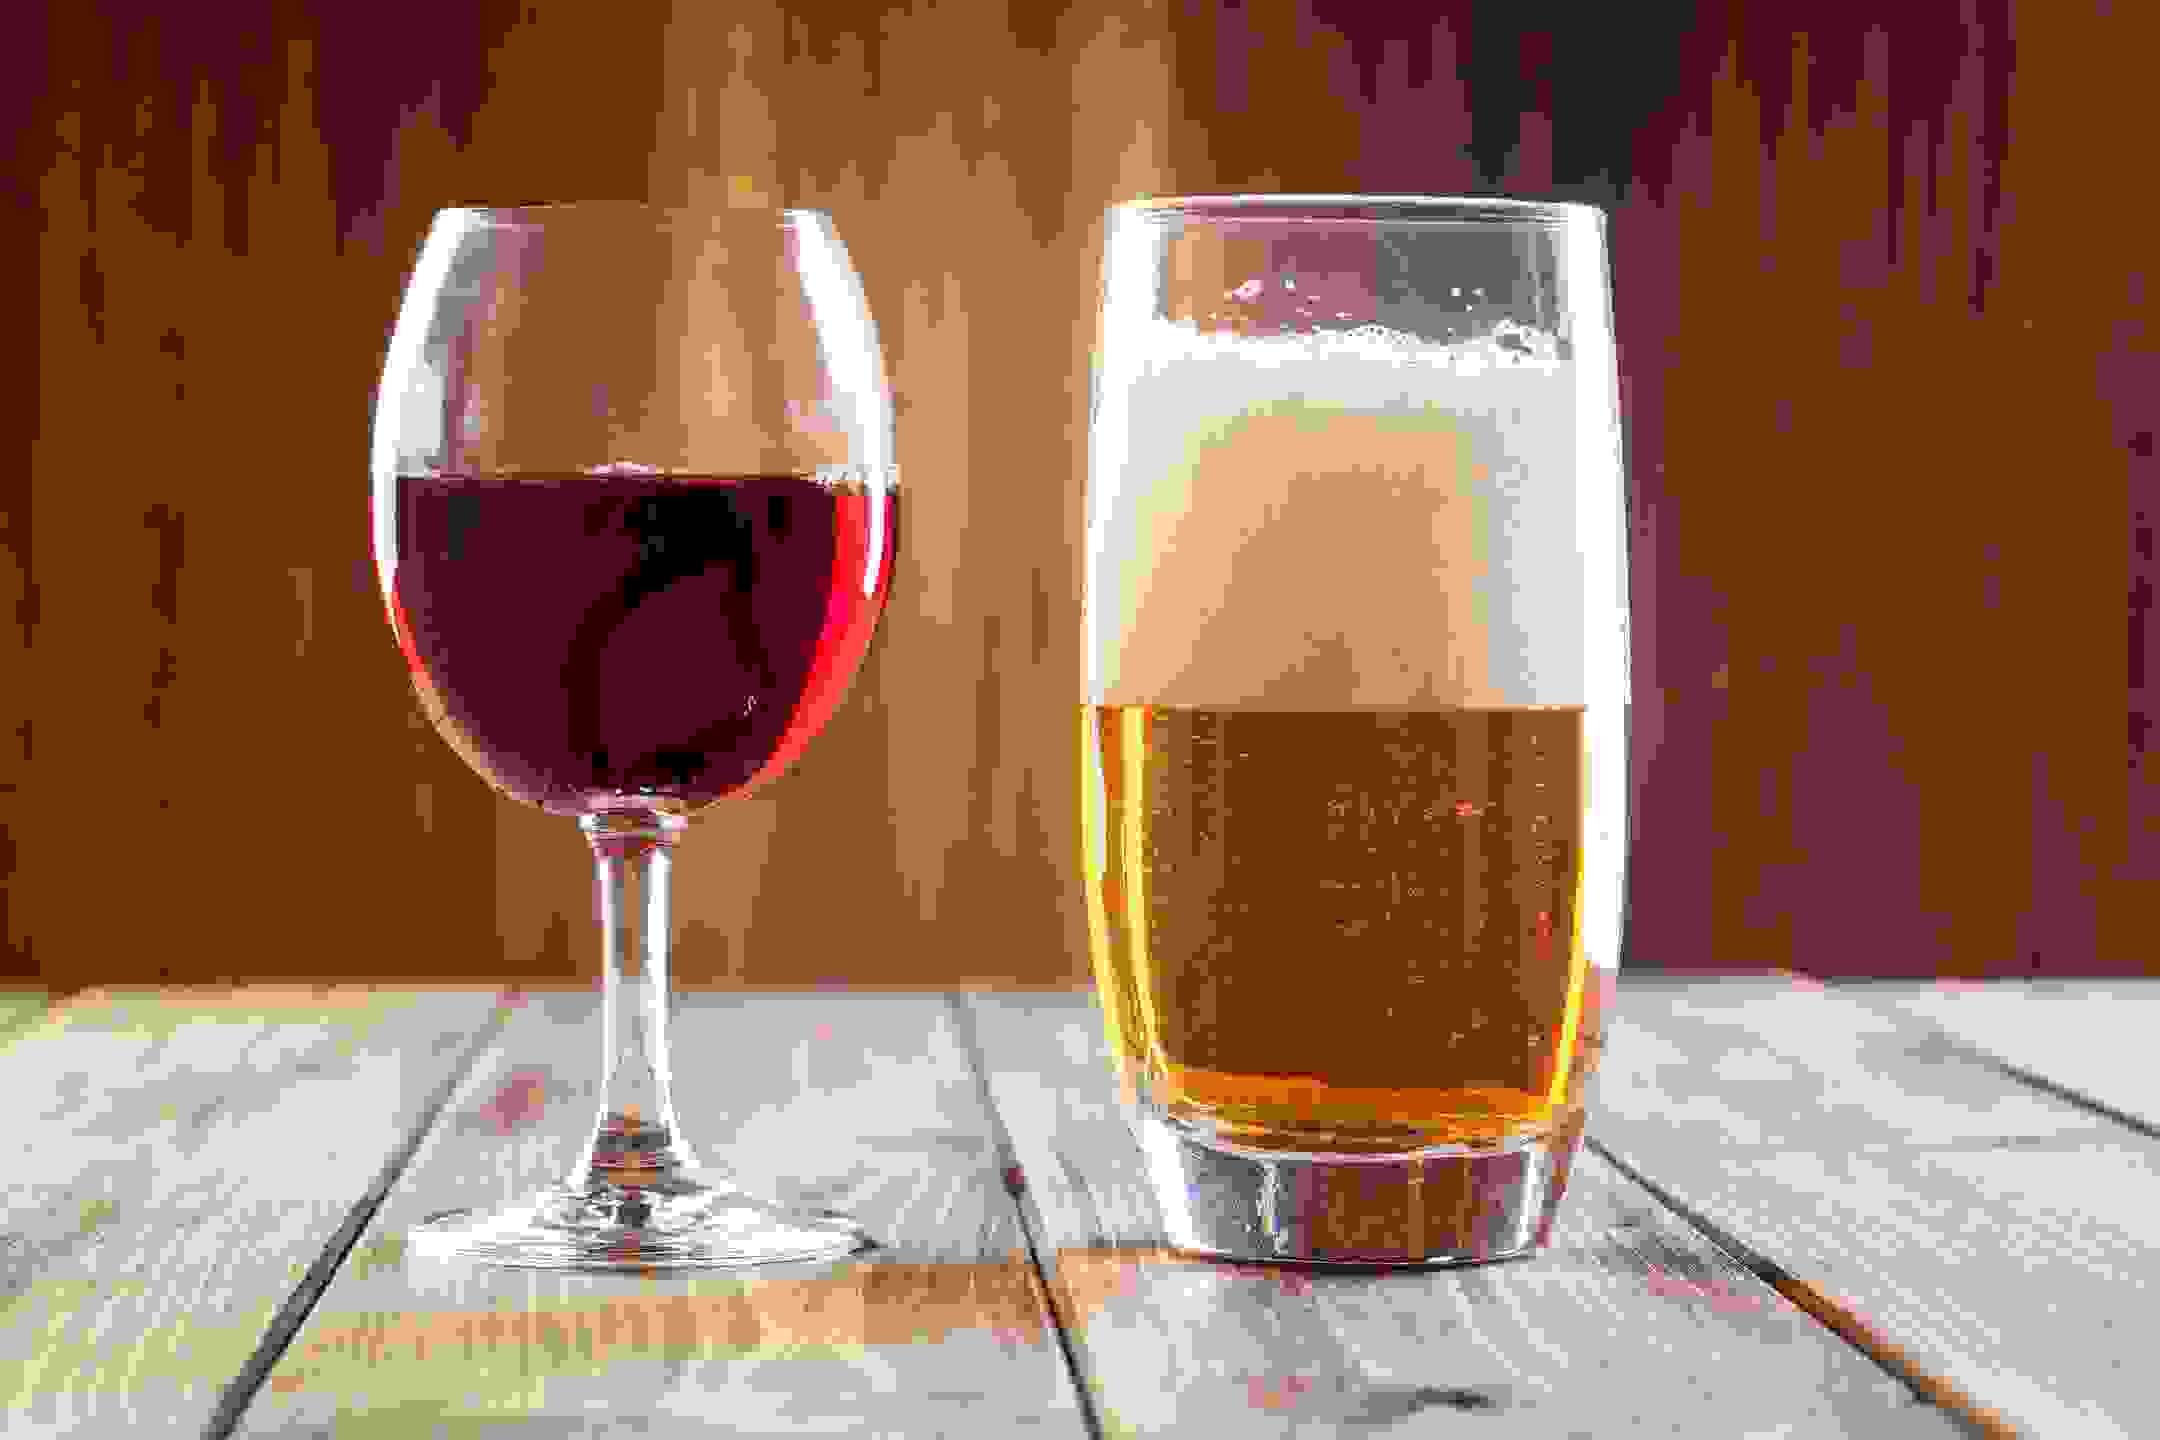 A glass of wine and a glass of beer with a frosty head, standing on a wooden table